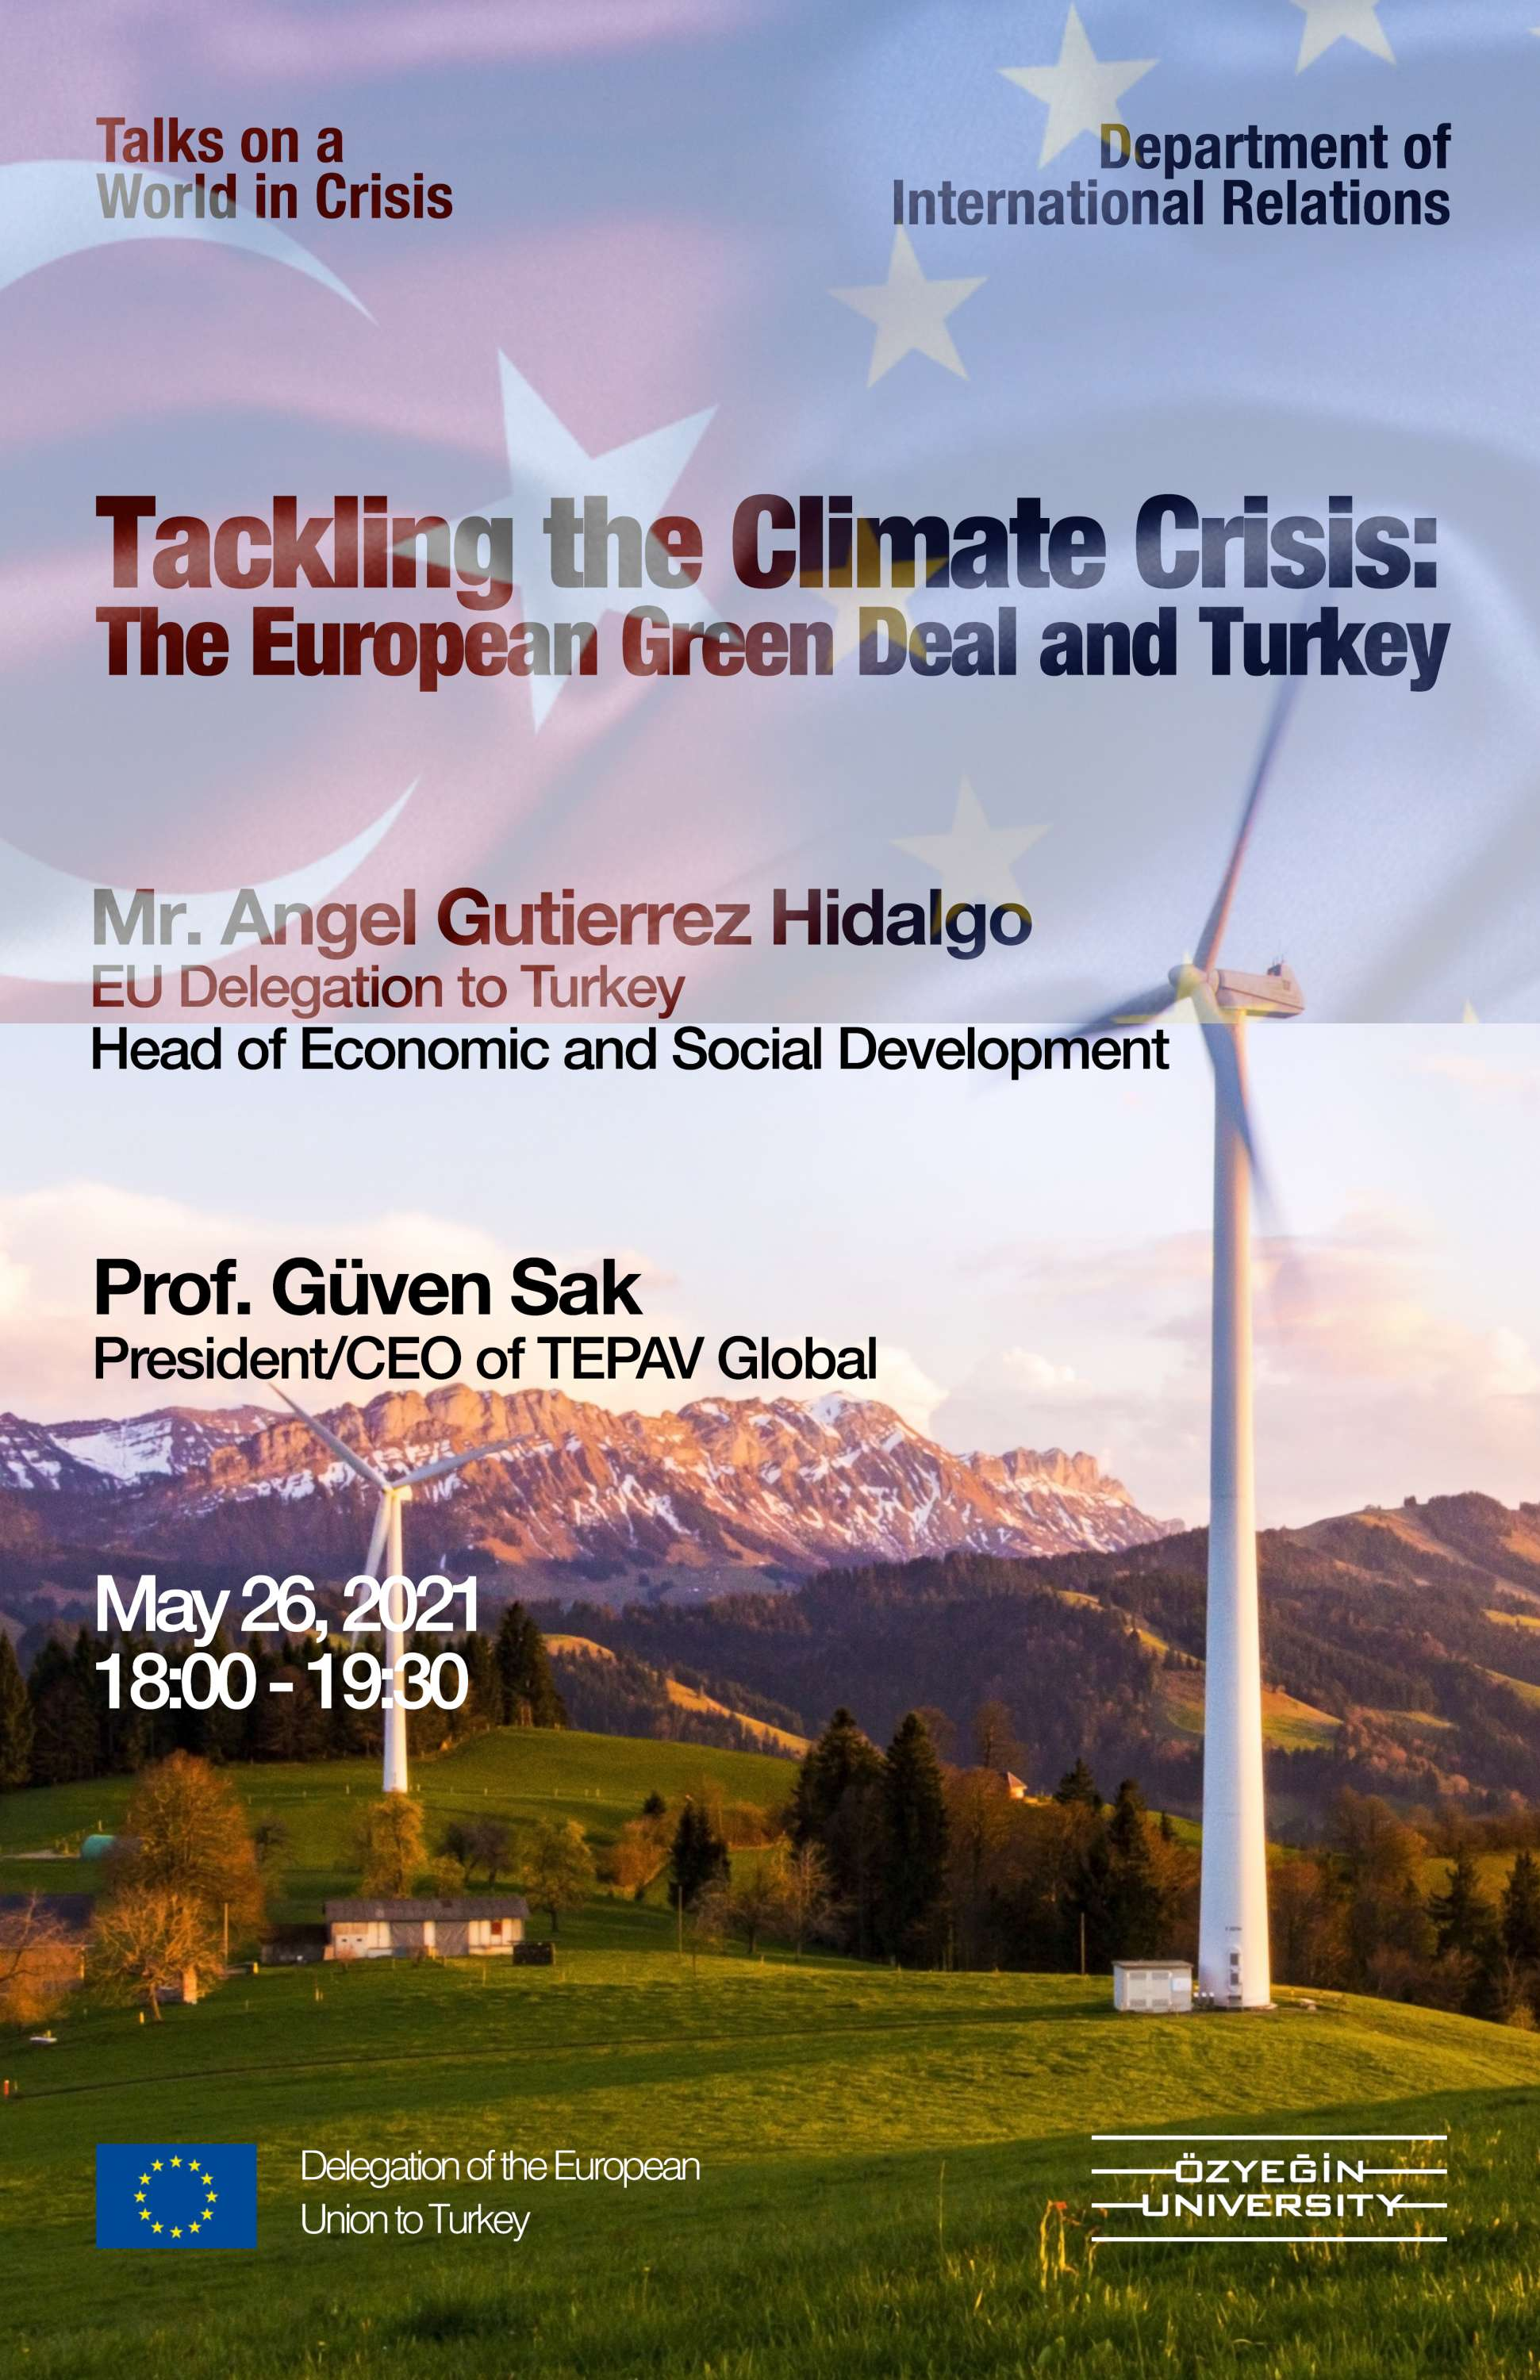 Tackling Climate Crisis: The European Green Deal and Turkey